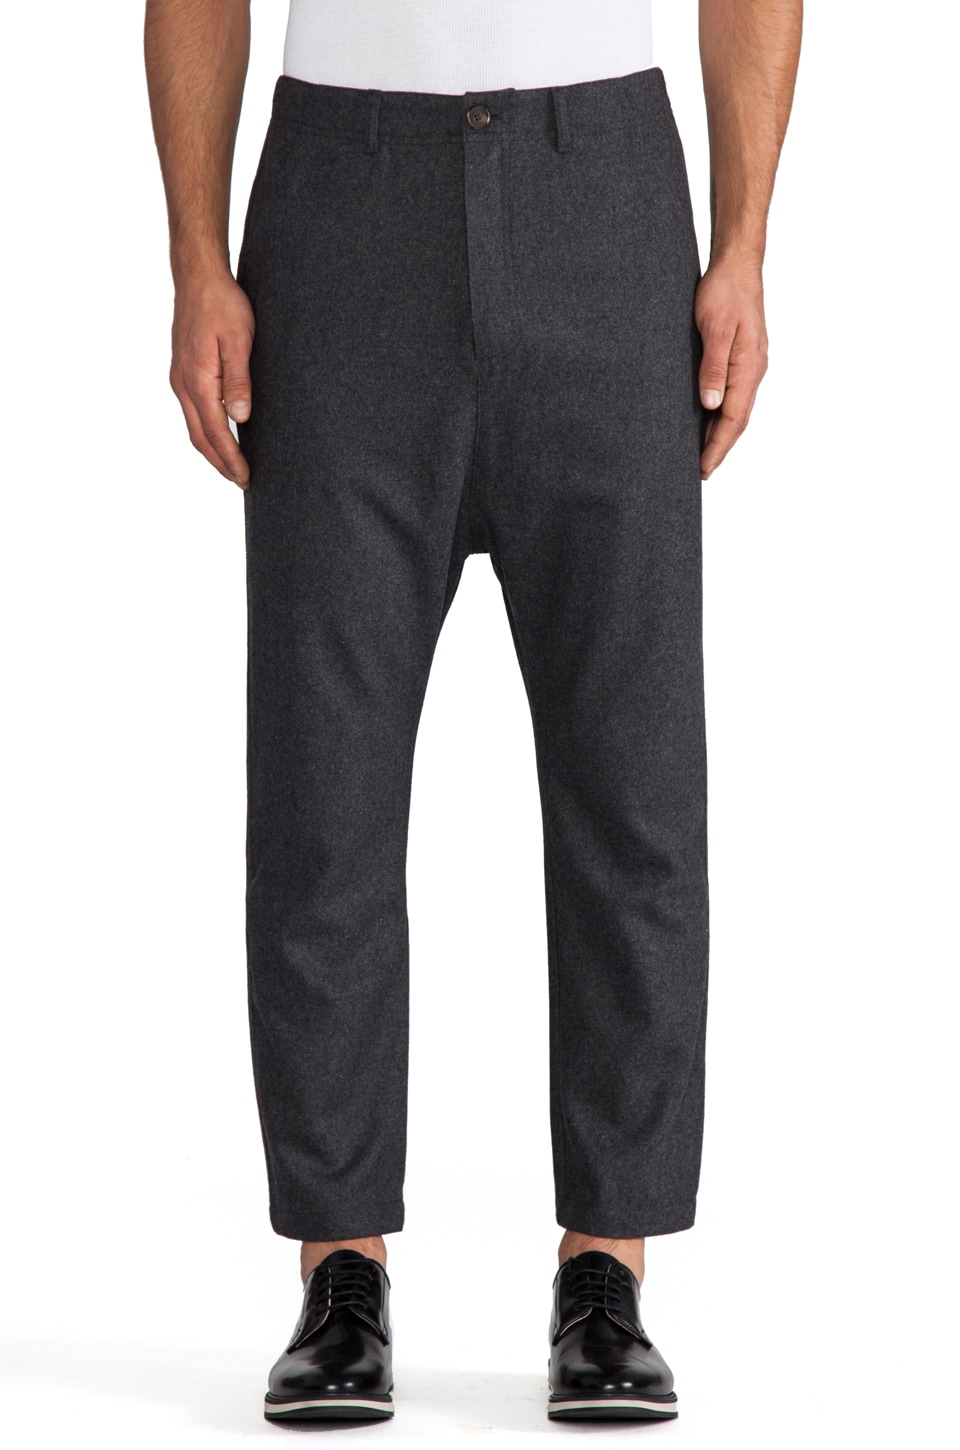 Kai-aakmann Drop Trouser in Charcoal